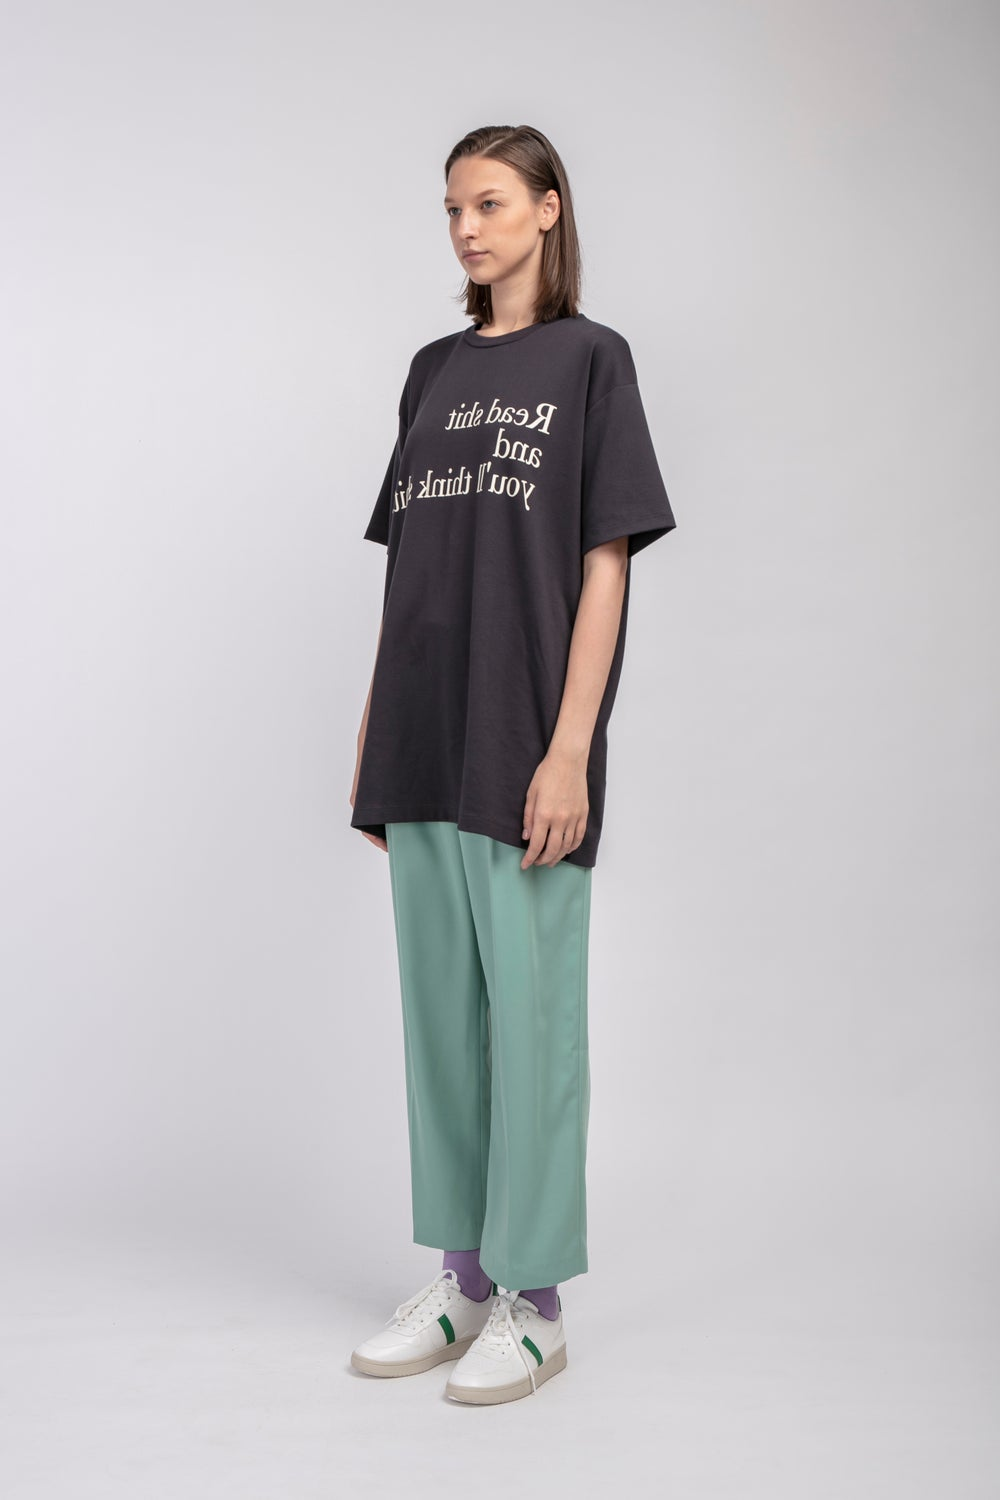 Matter Matters Oversized Long Tee with pockets / Read Shit in Charcoal